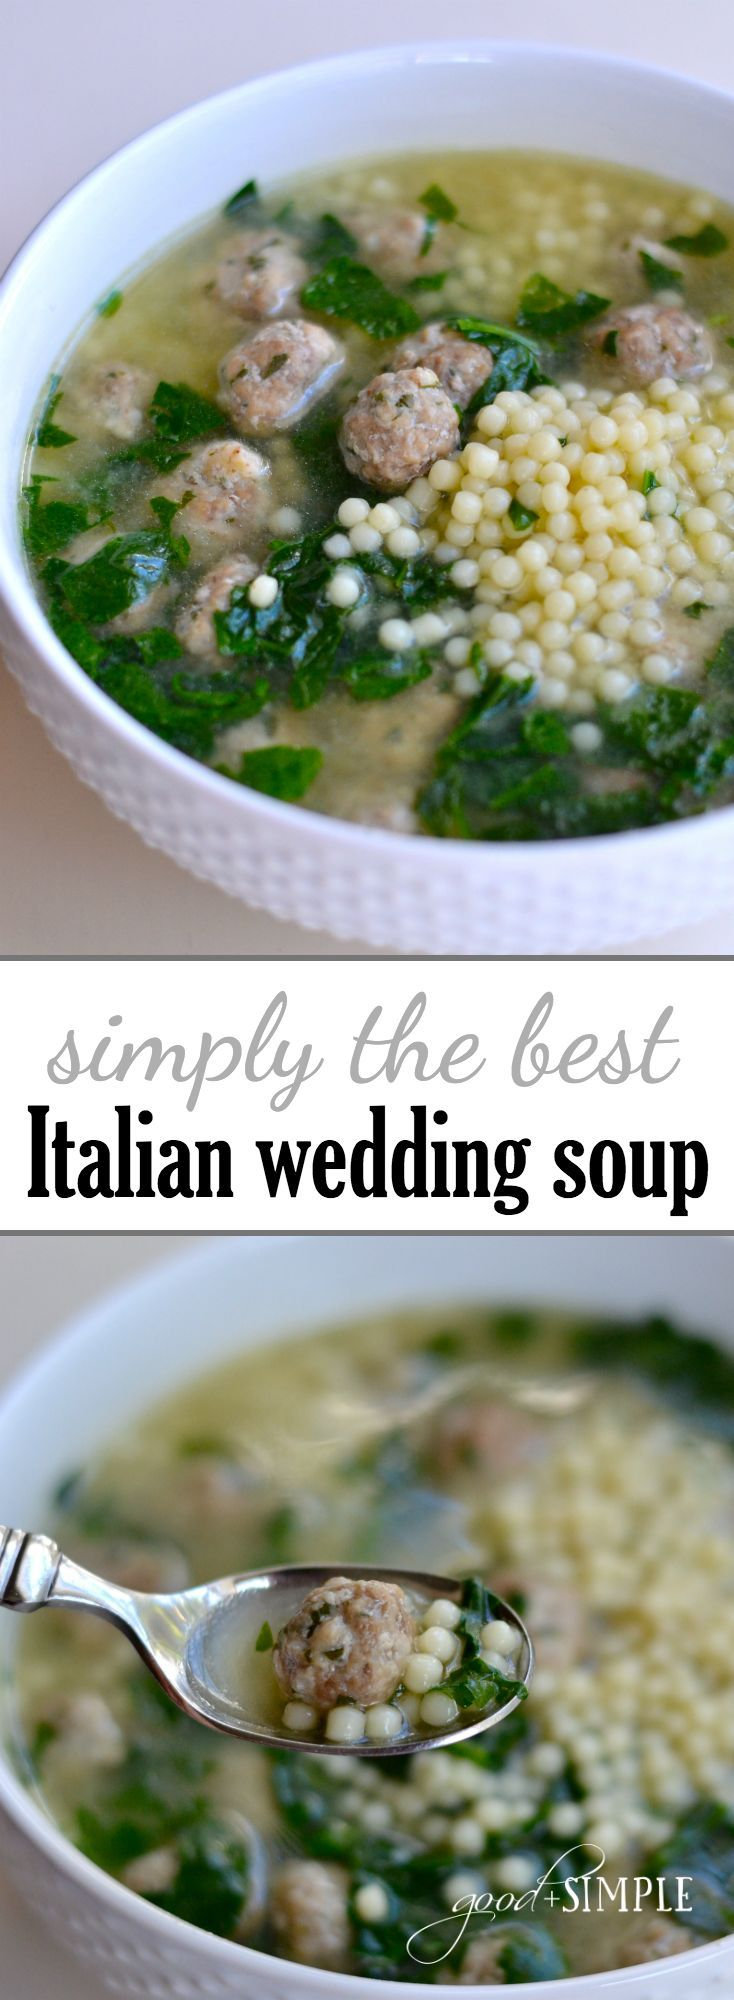 Favorite Italian Wedding Soup Recipe And Weddings